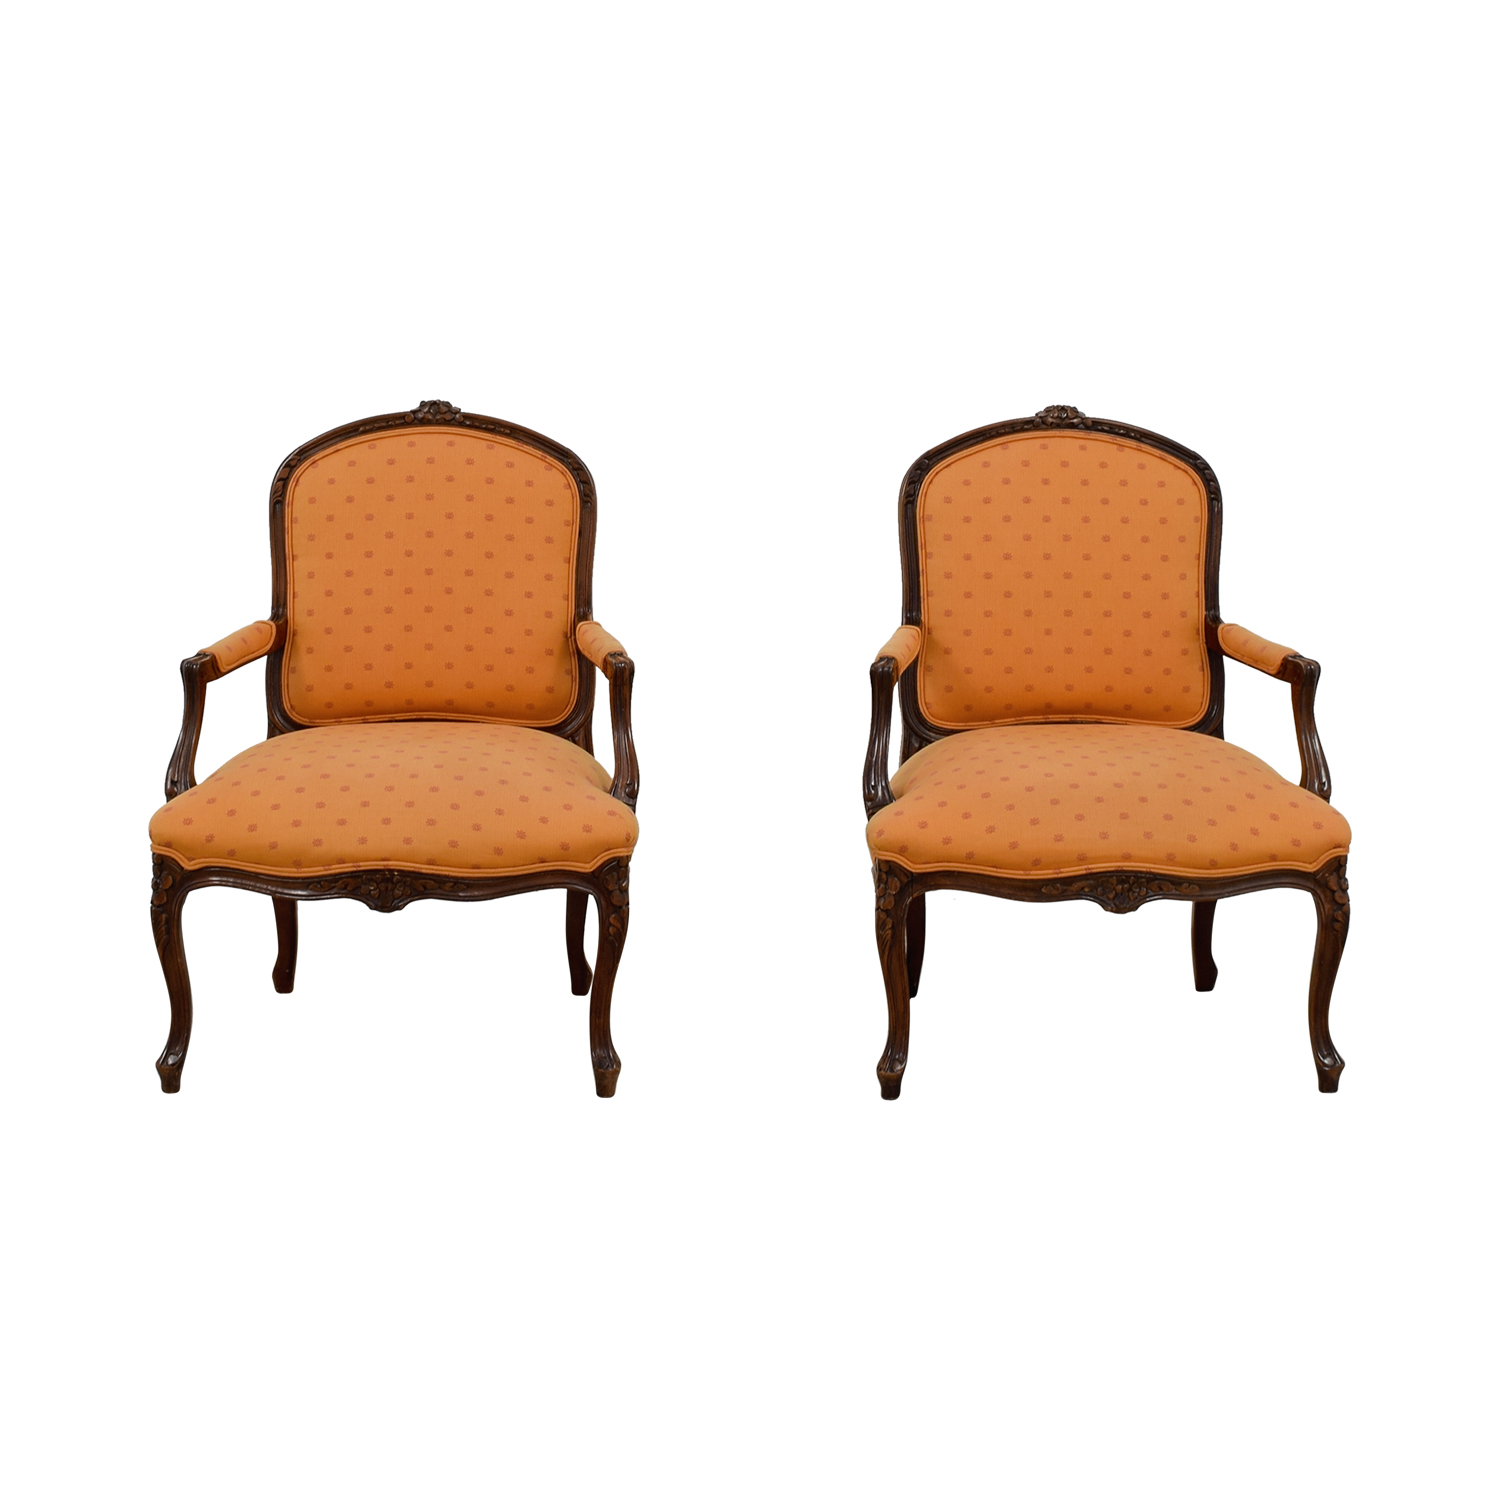 Mid-Century Orange Upholstered Arm Accent Chairs / Chairs